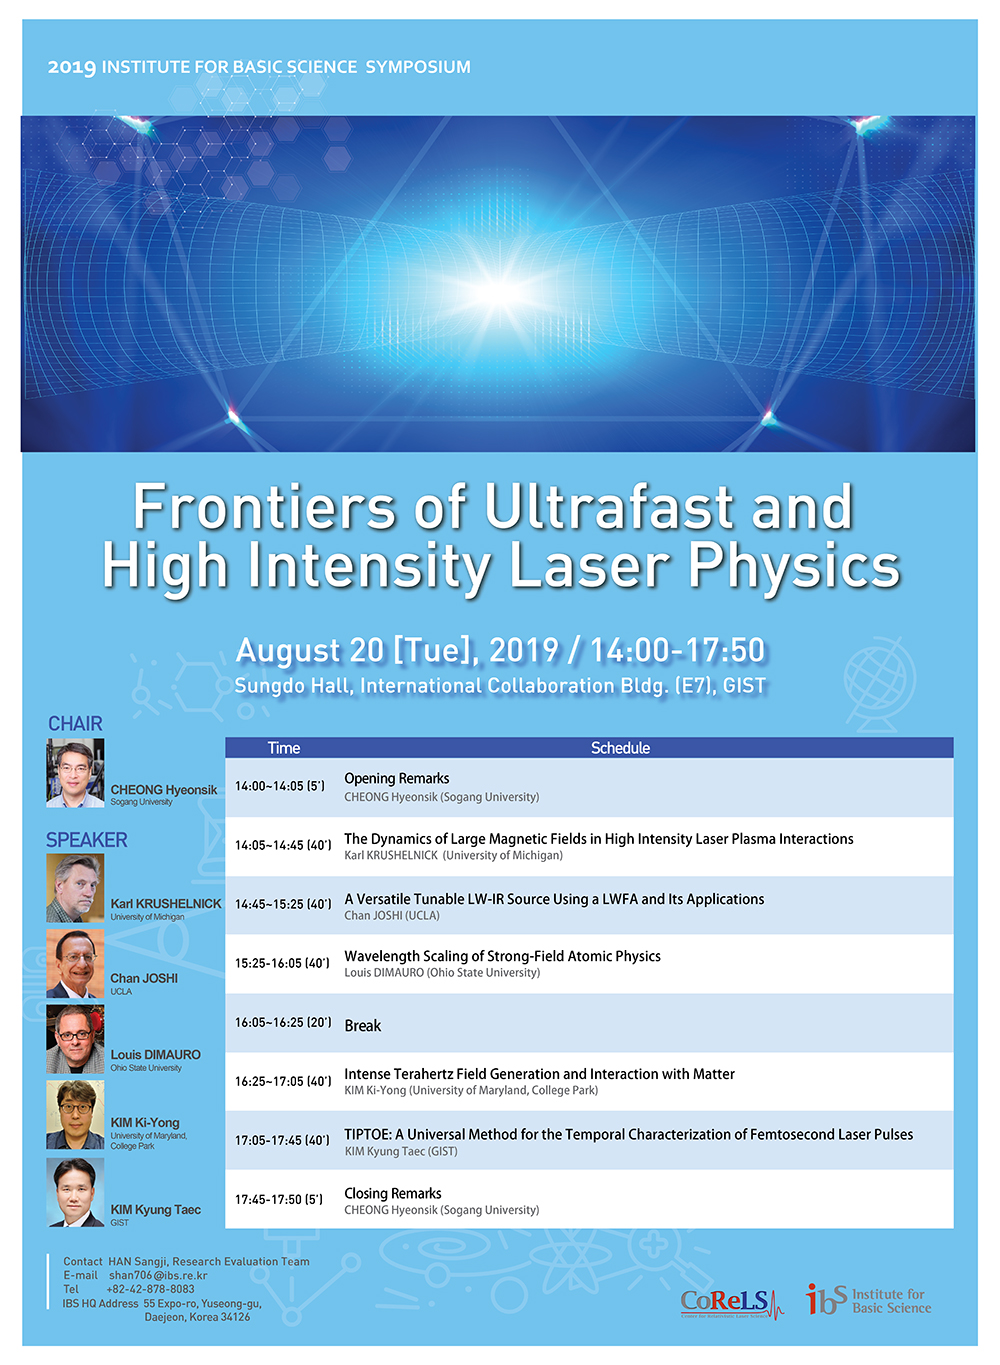 2019 IBS Symposium_Frontiers of Ultrafast and High Intensity Laser Physics